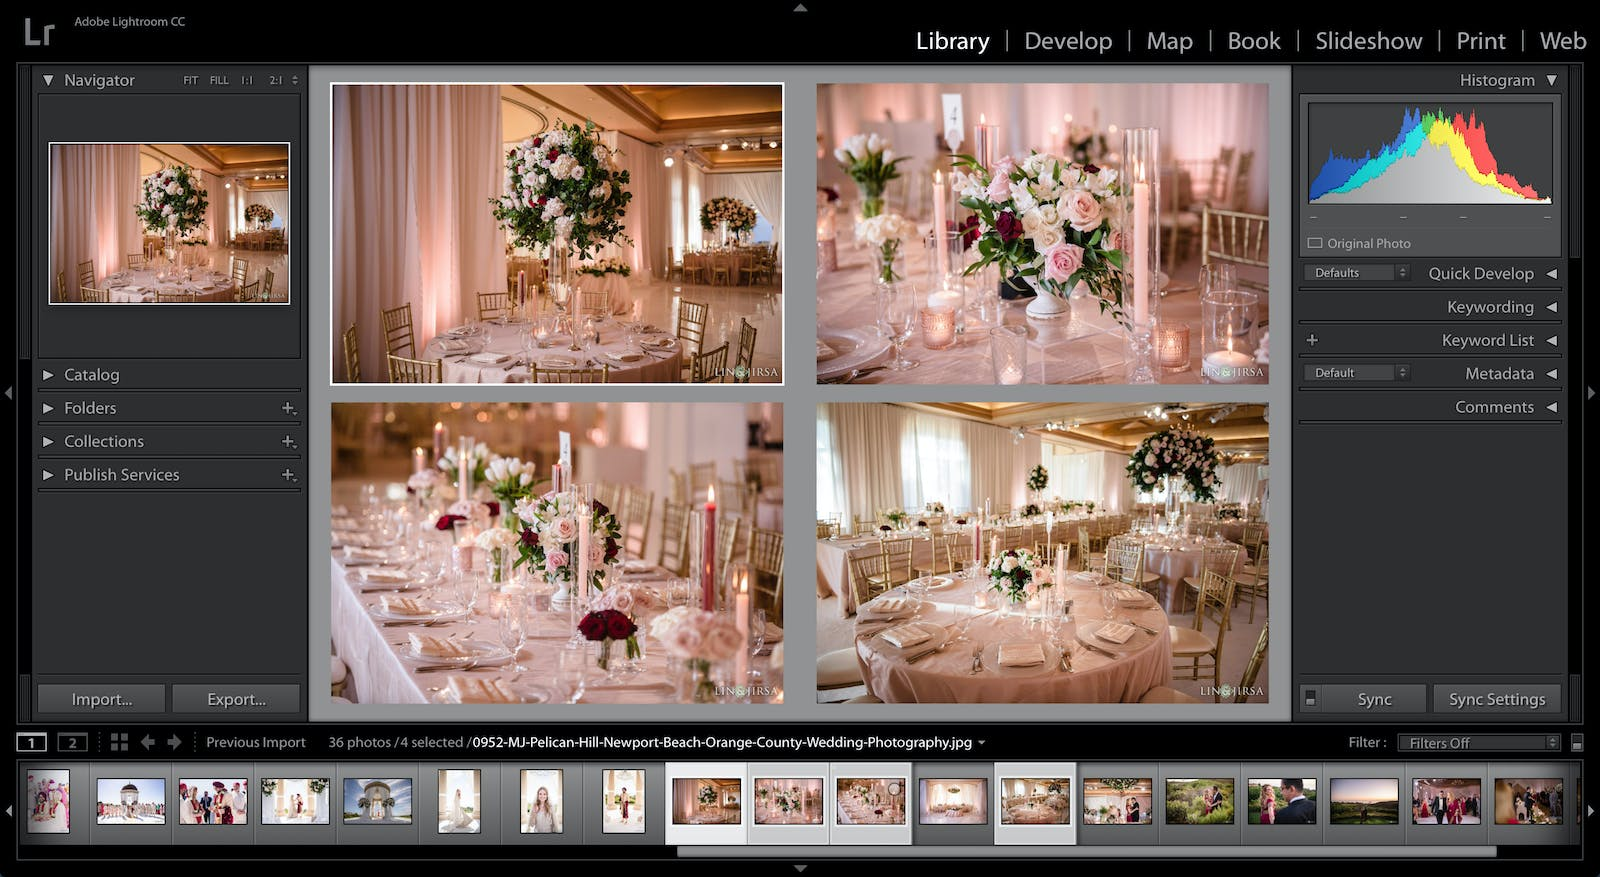 Photo editing tips for better slideshows by SLR Lounge